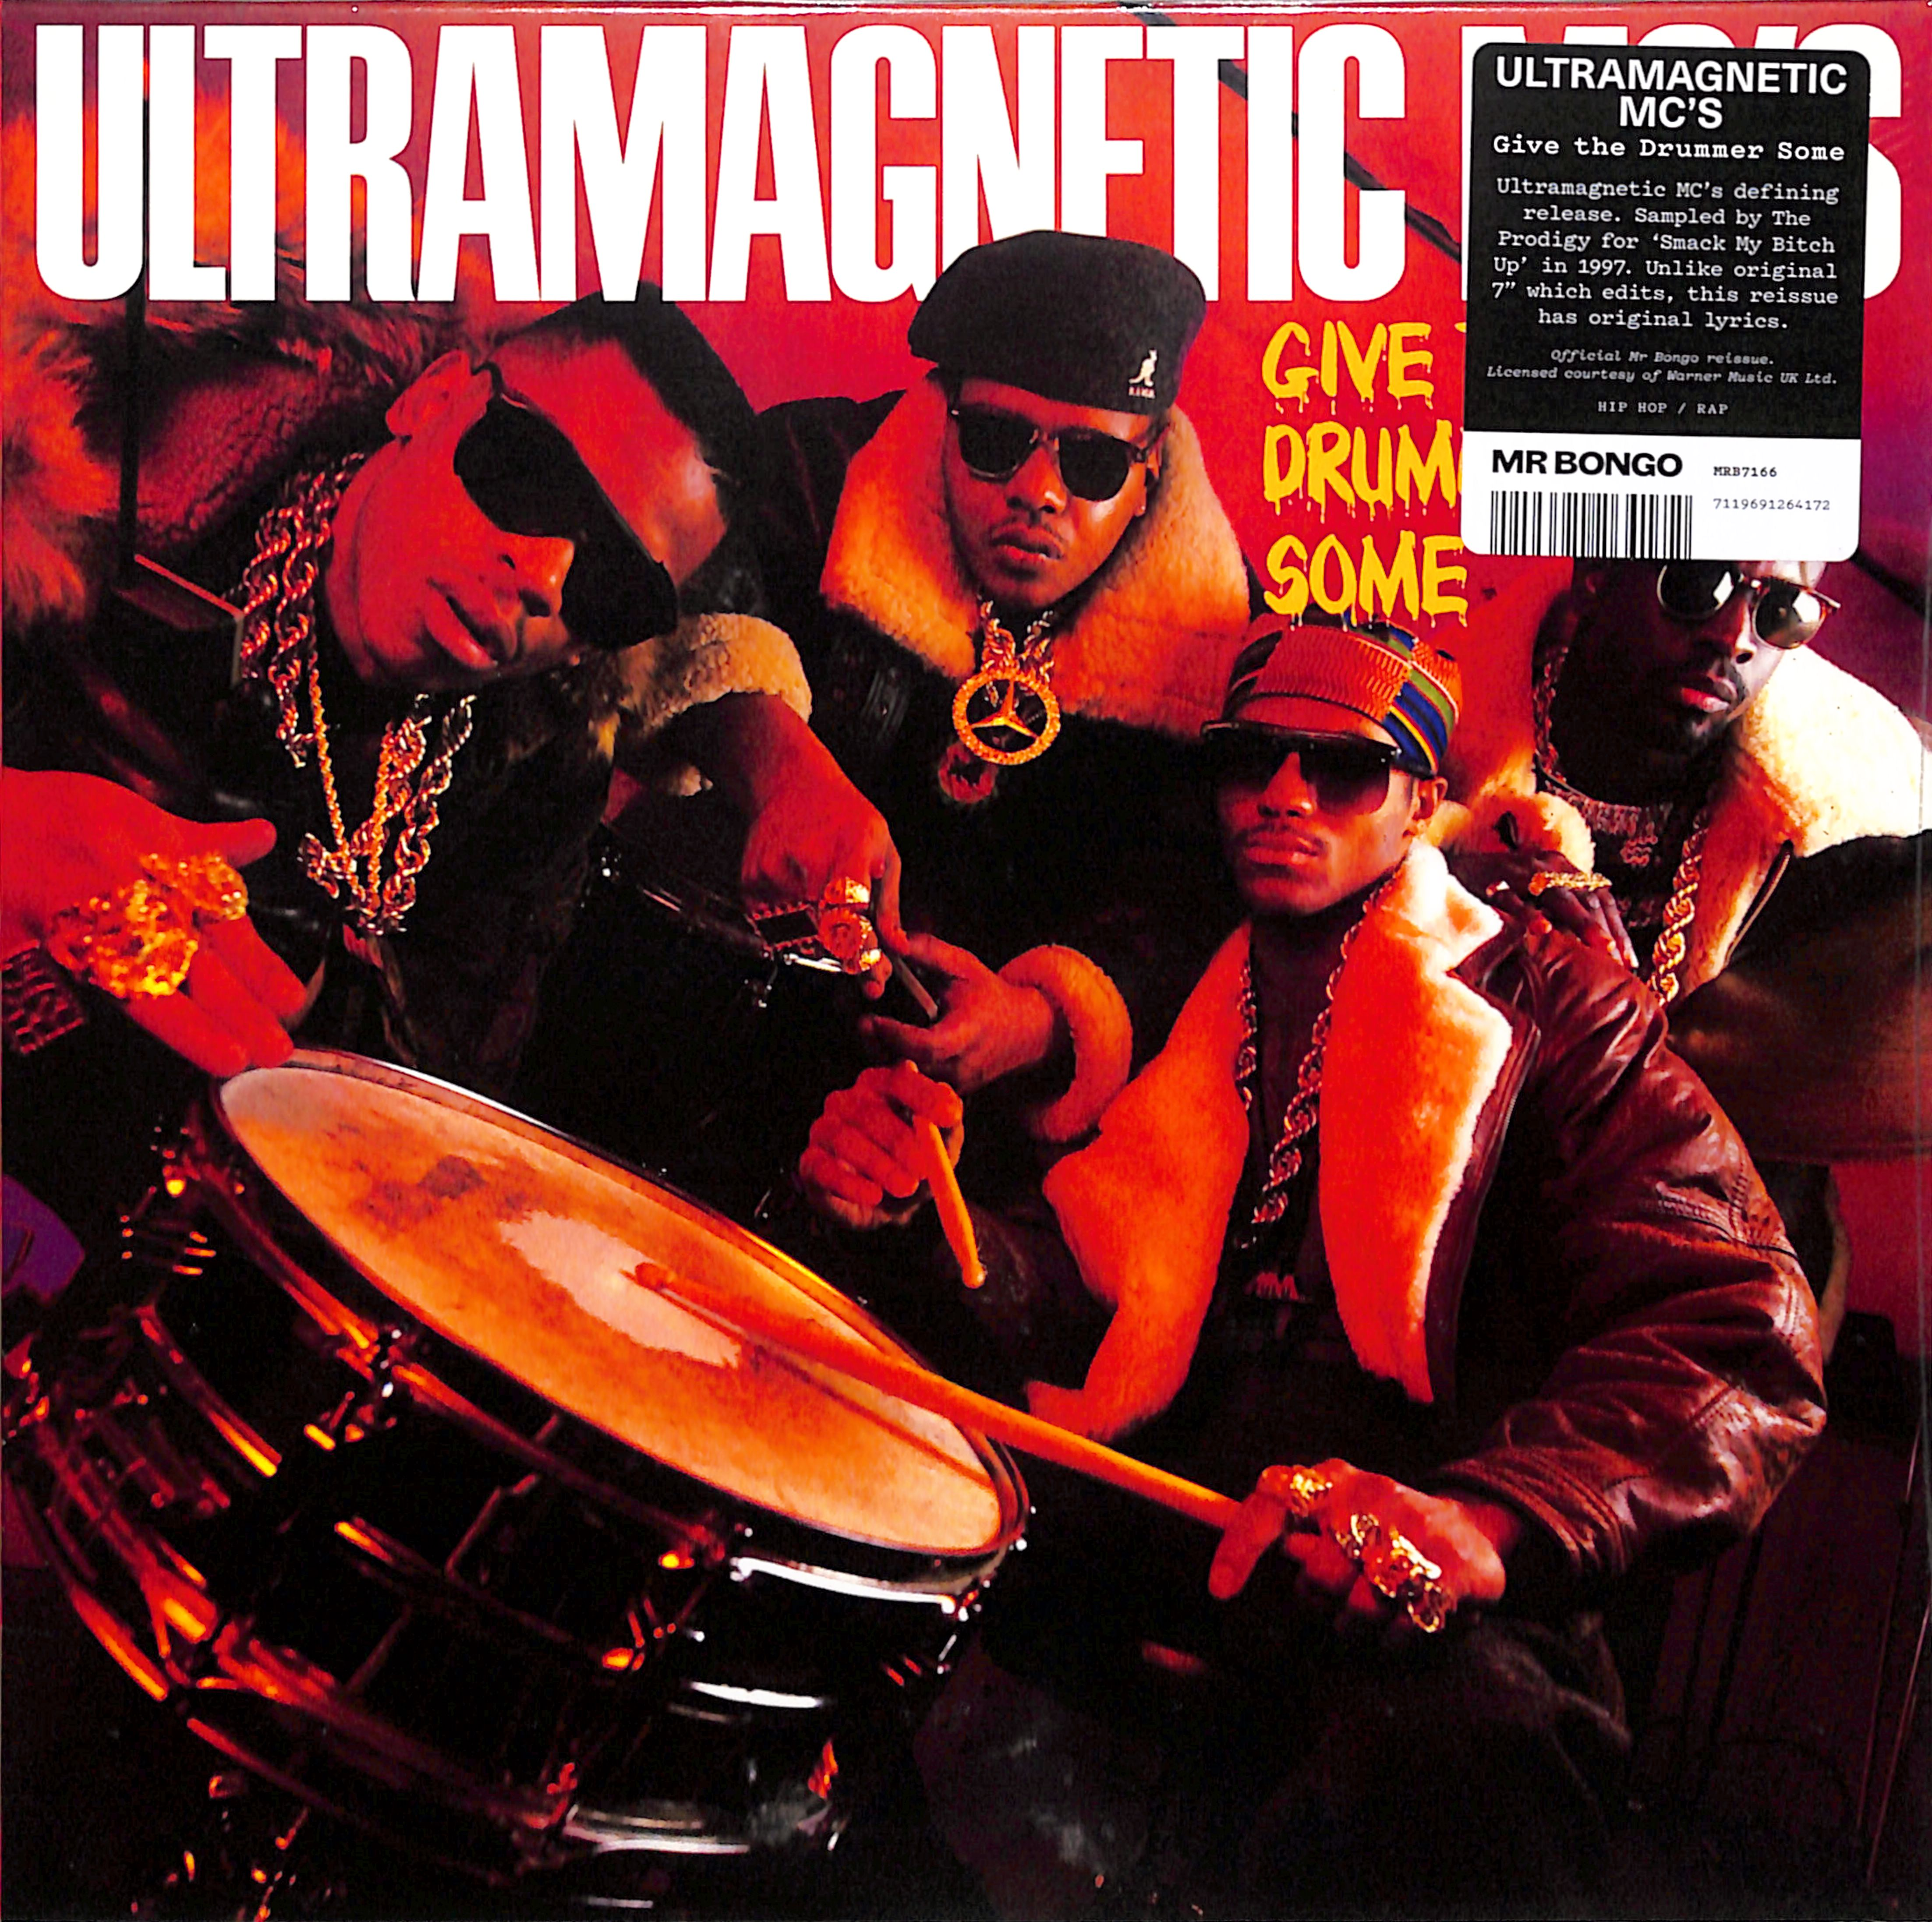 Ultramagnetic M.C.s - GIVE THE DRUMMER SOME